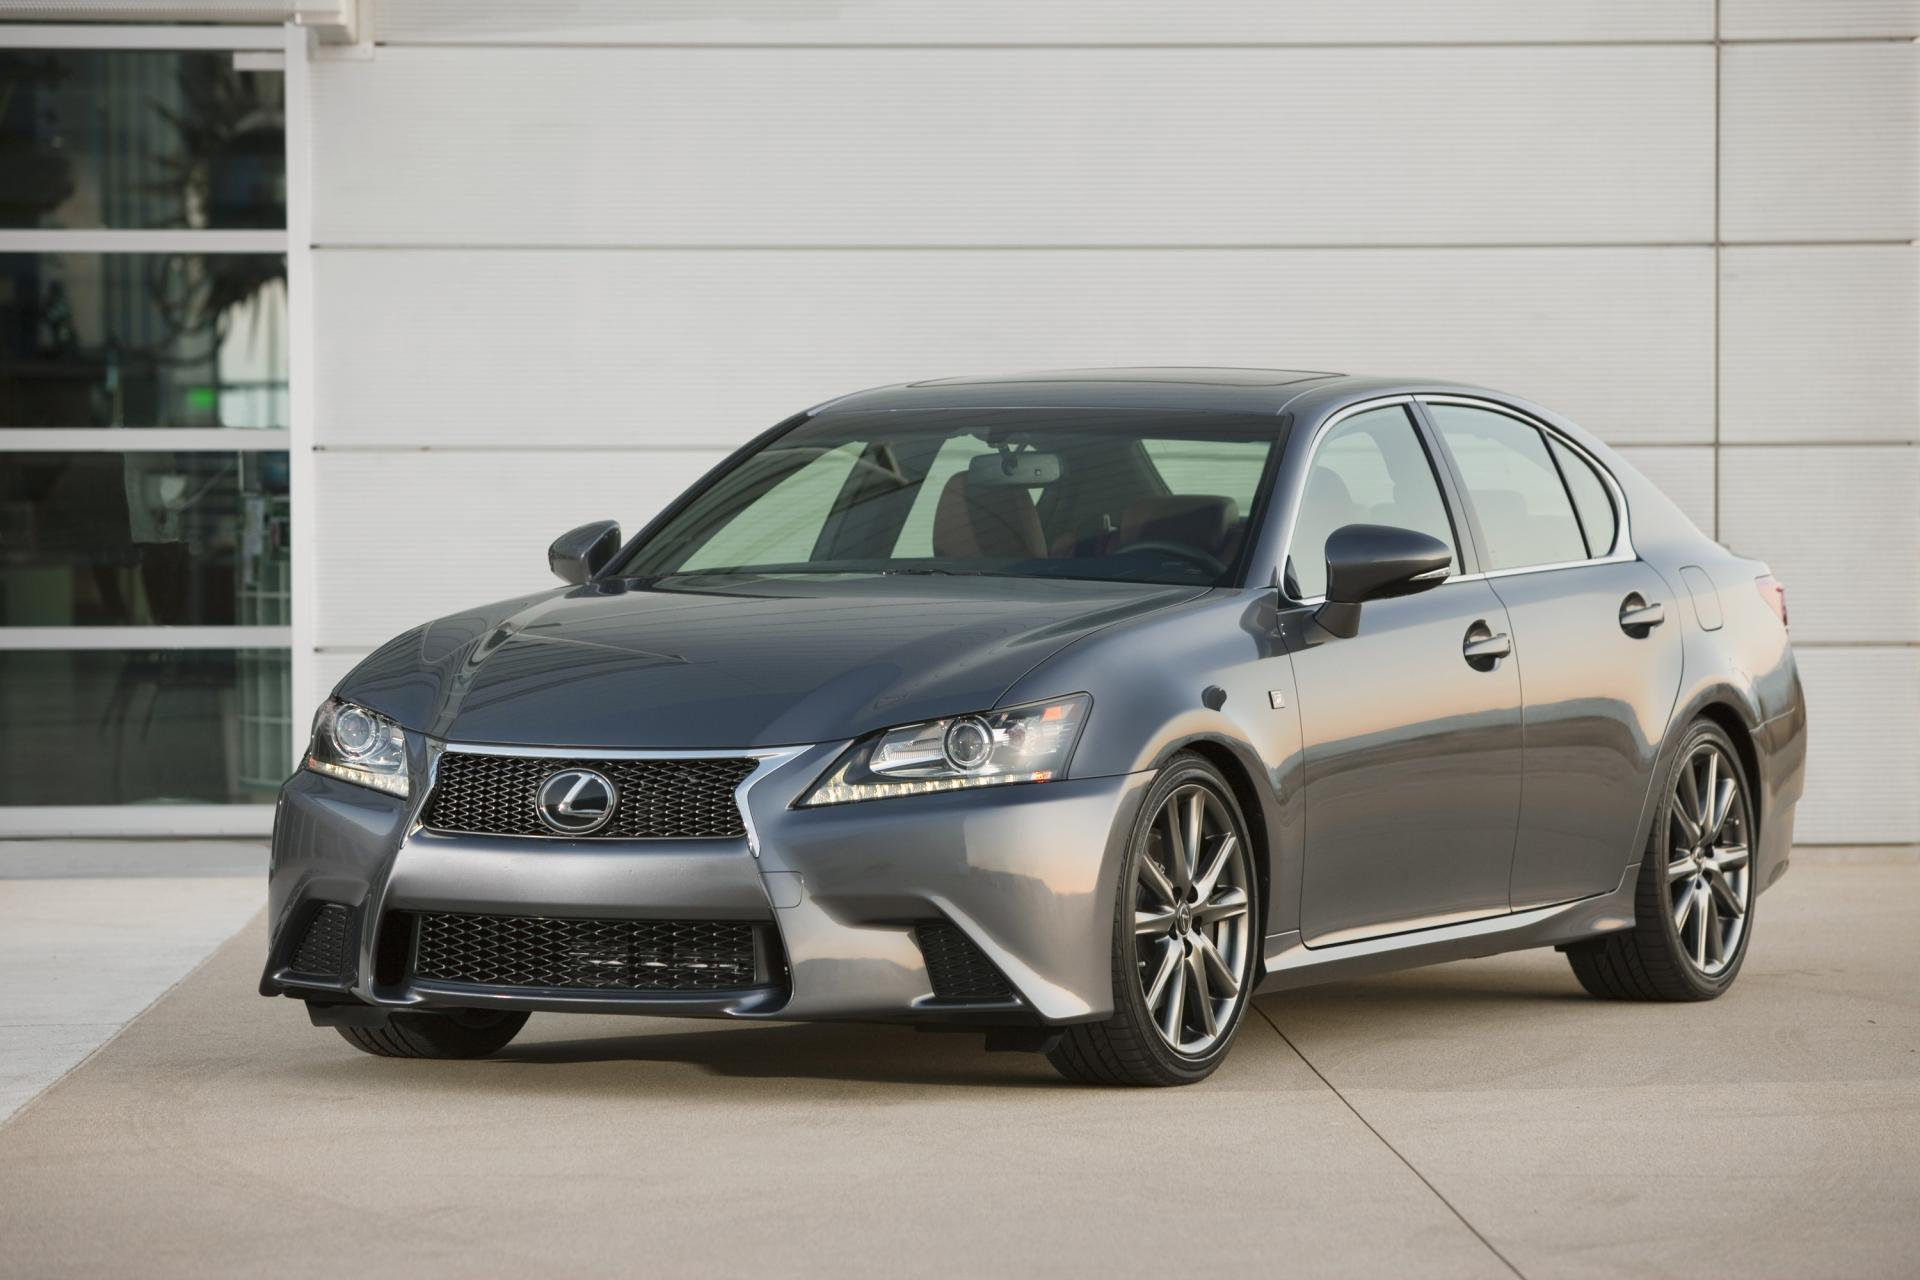 2014 lexus gs 350 f sport technical specifications and data engine dimensions and mechanical. Black Bedroom Furniture Sets. Home Design Ideas